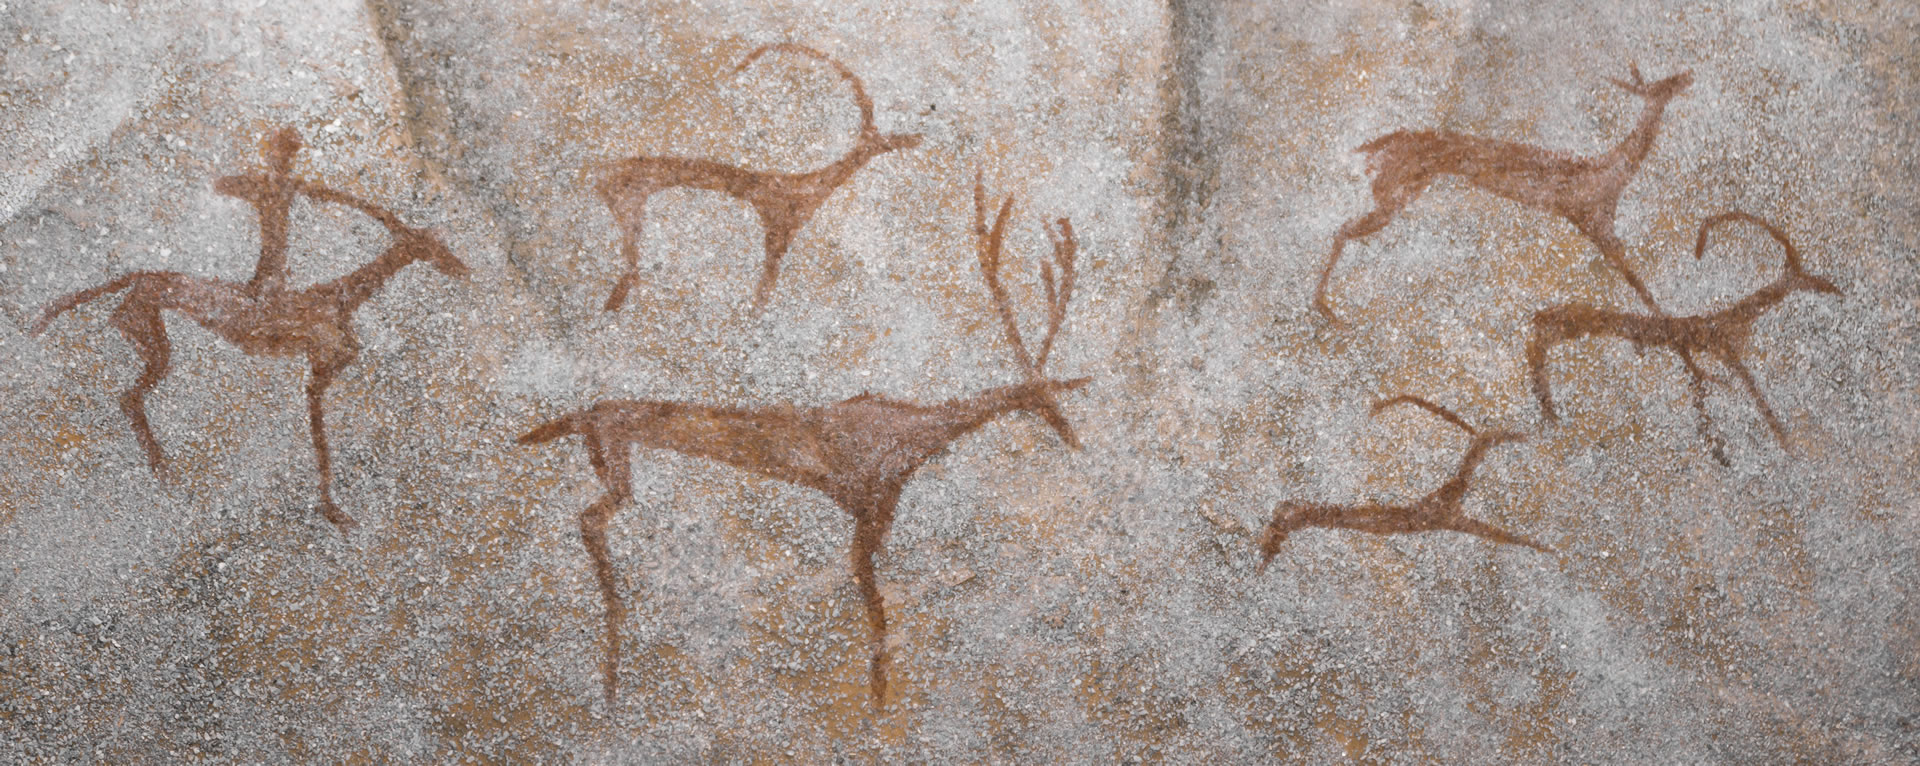 Cave drawings of deer